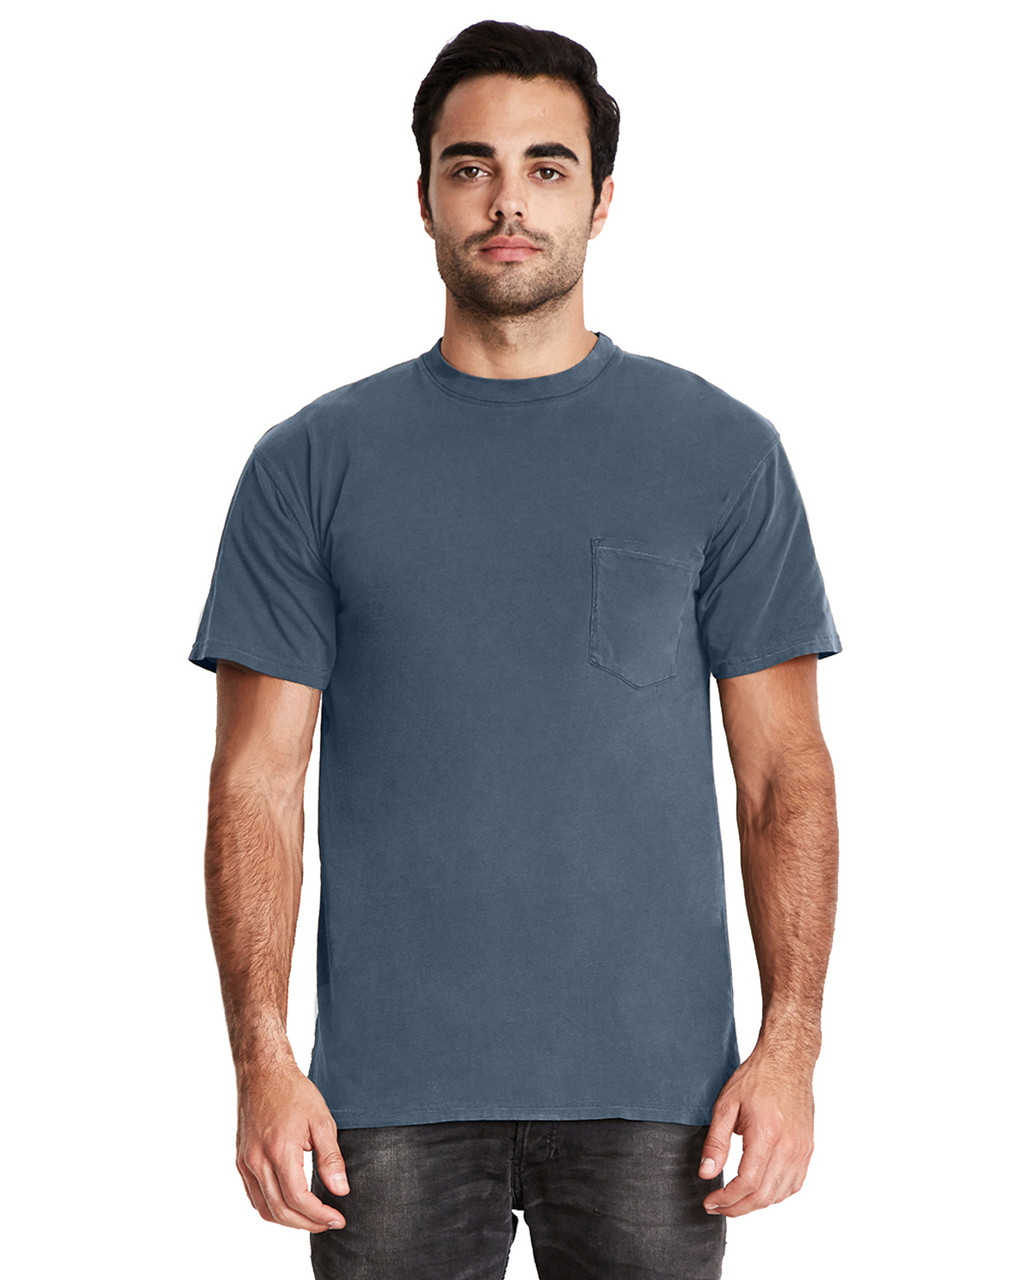 Blue Jean - 7415 Next Level Adult Inspired Dye Crew T-Shirt with Pocket | Blankclothing.ca